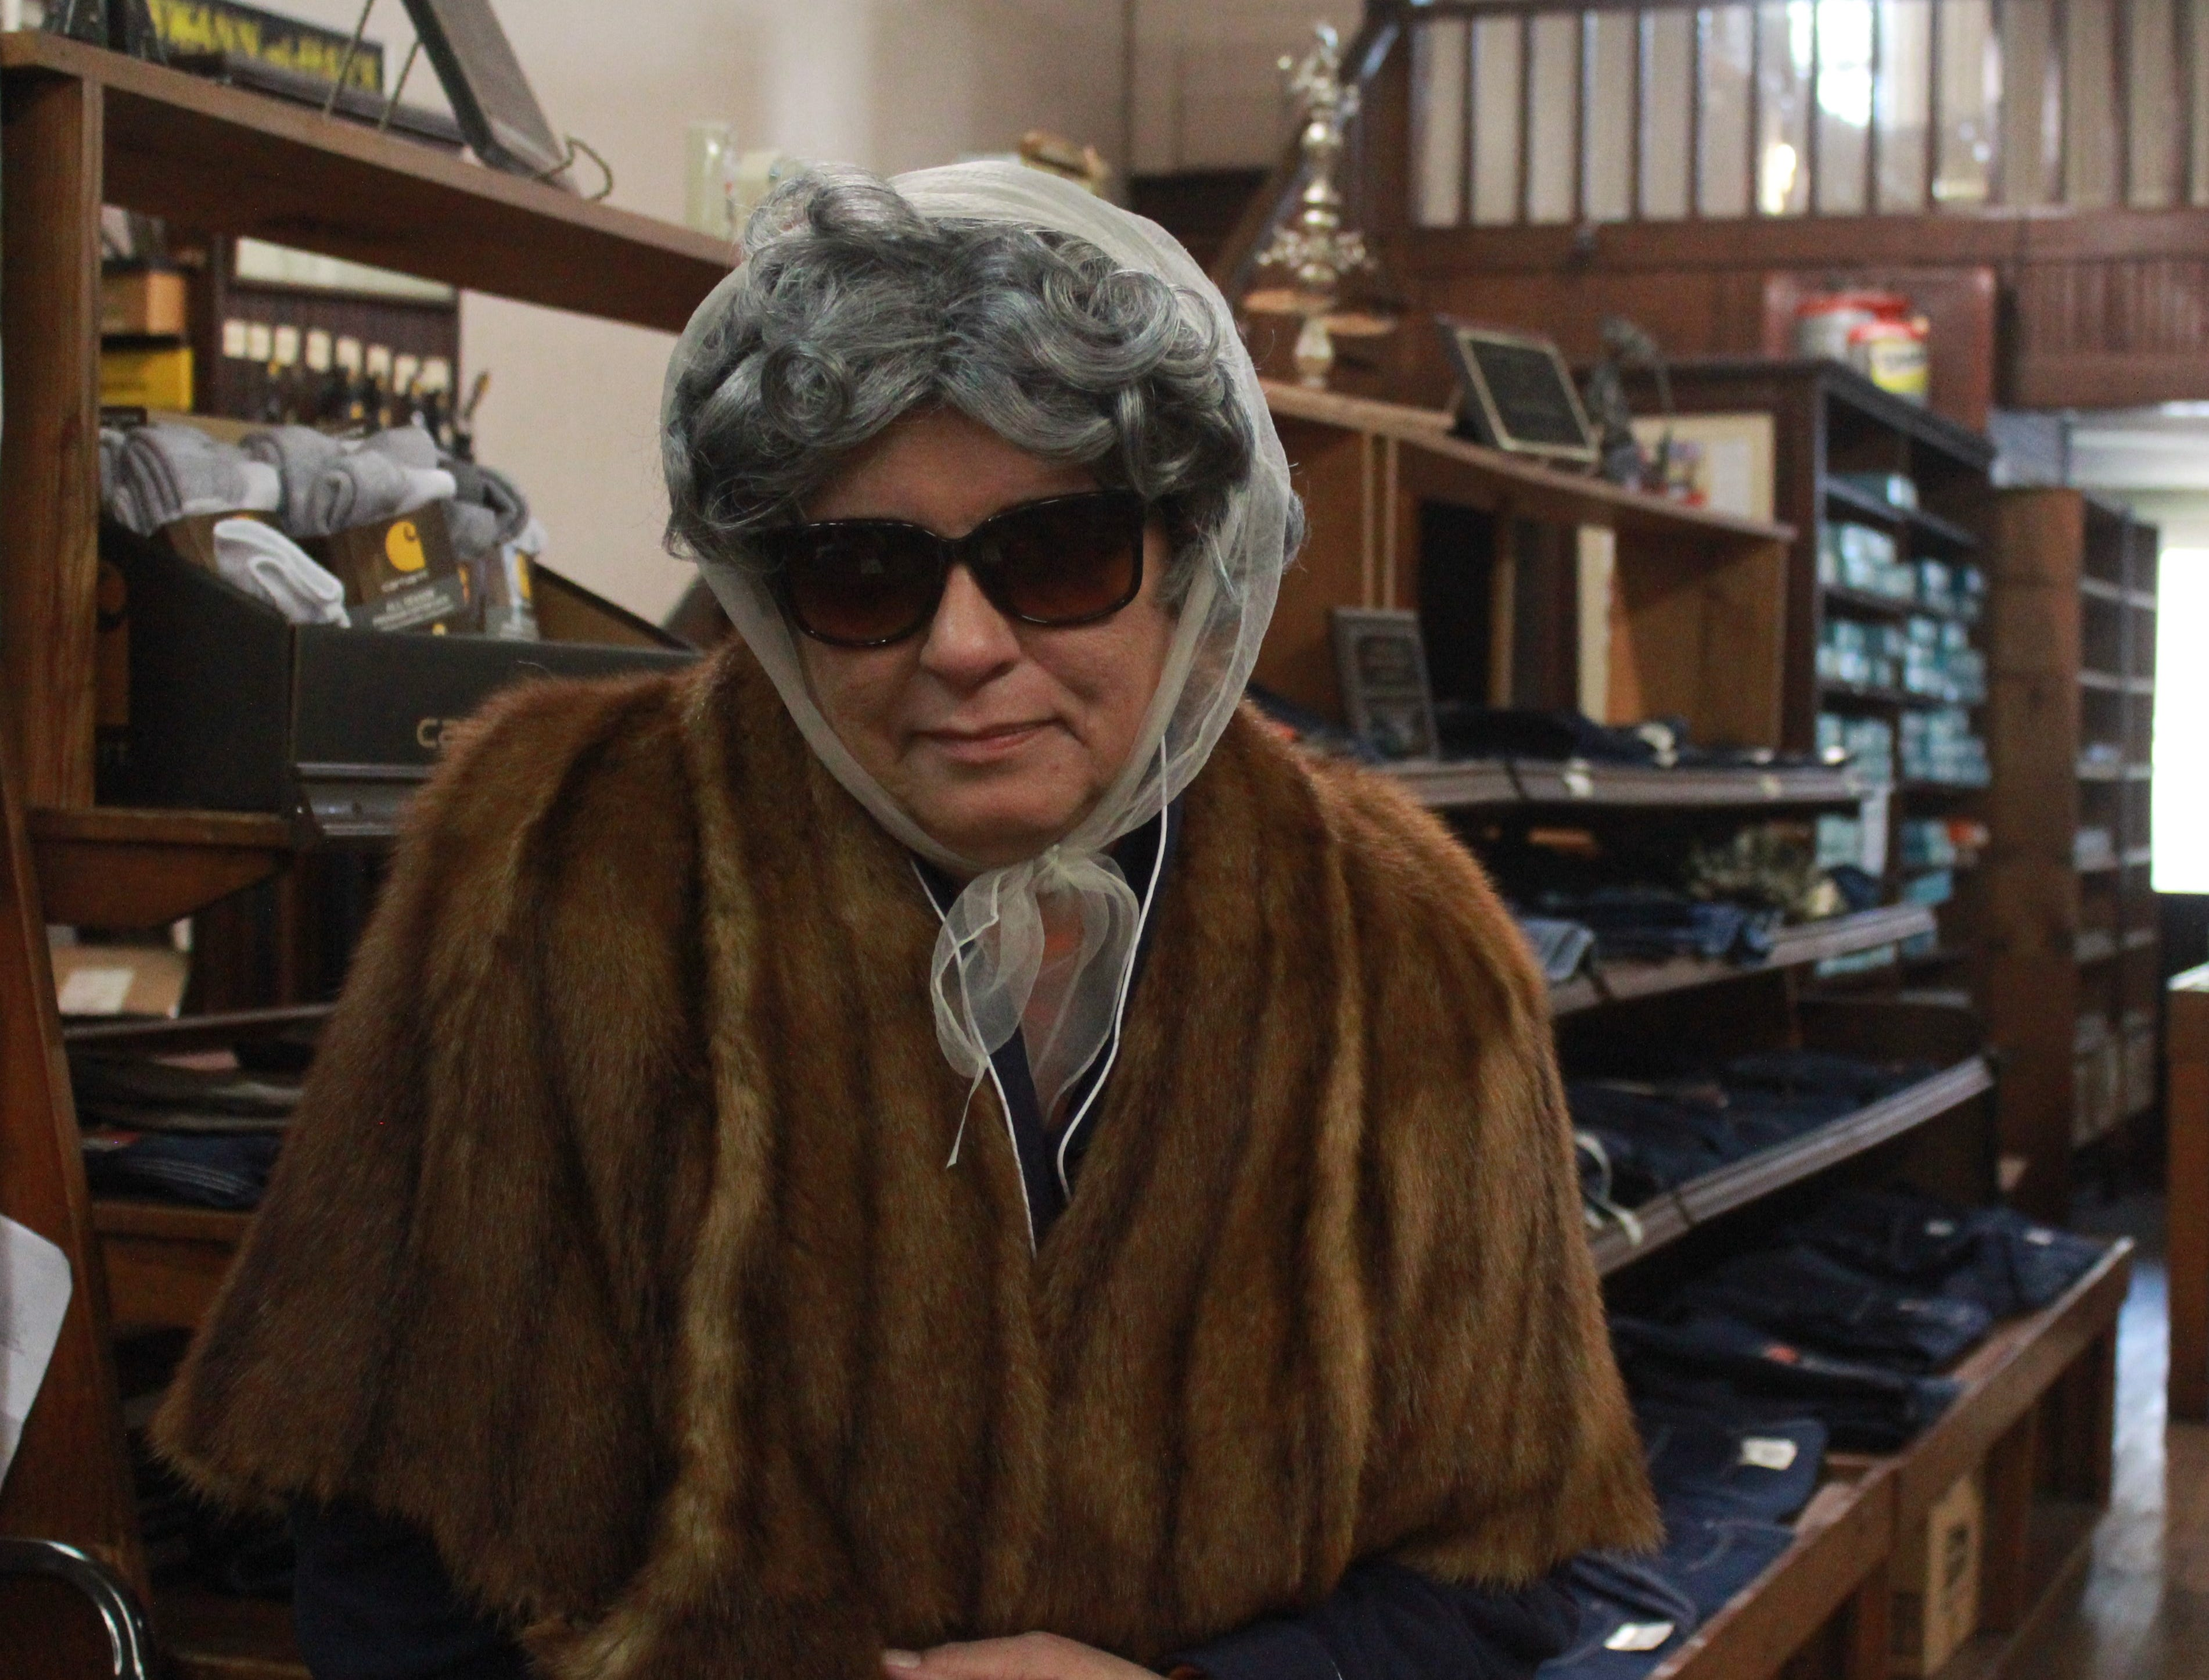 Georgette Shelton of Marshall department store Penland & Sons disguises herself as an old woman.